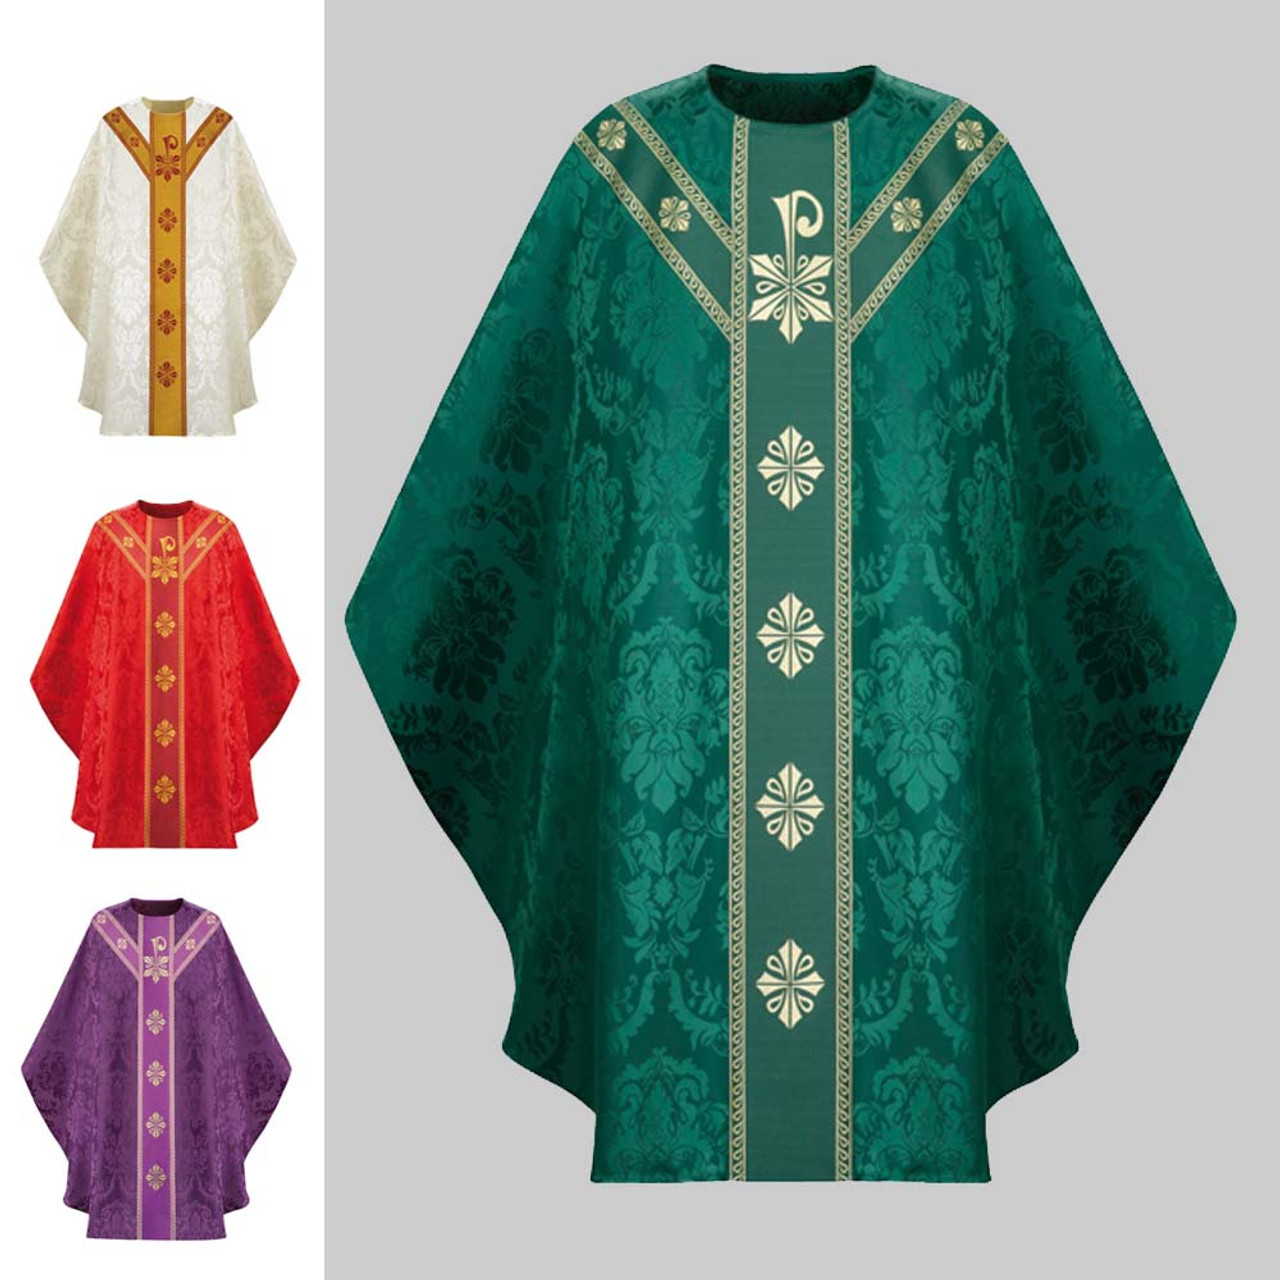 3889 Green Chasuble in Rafael